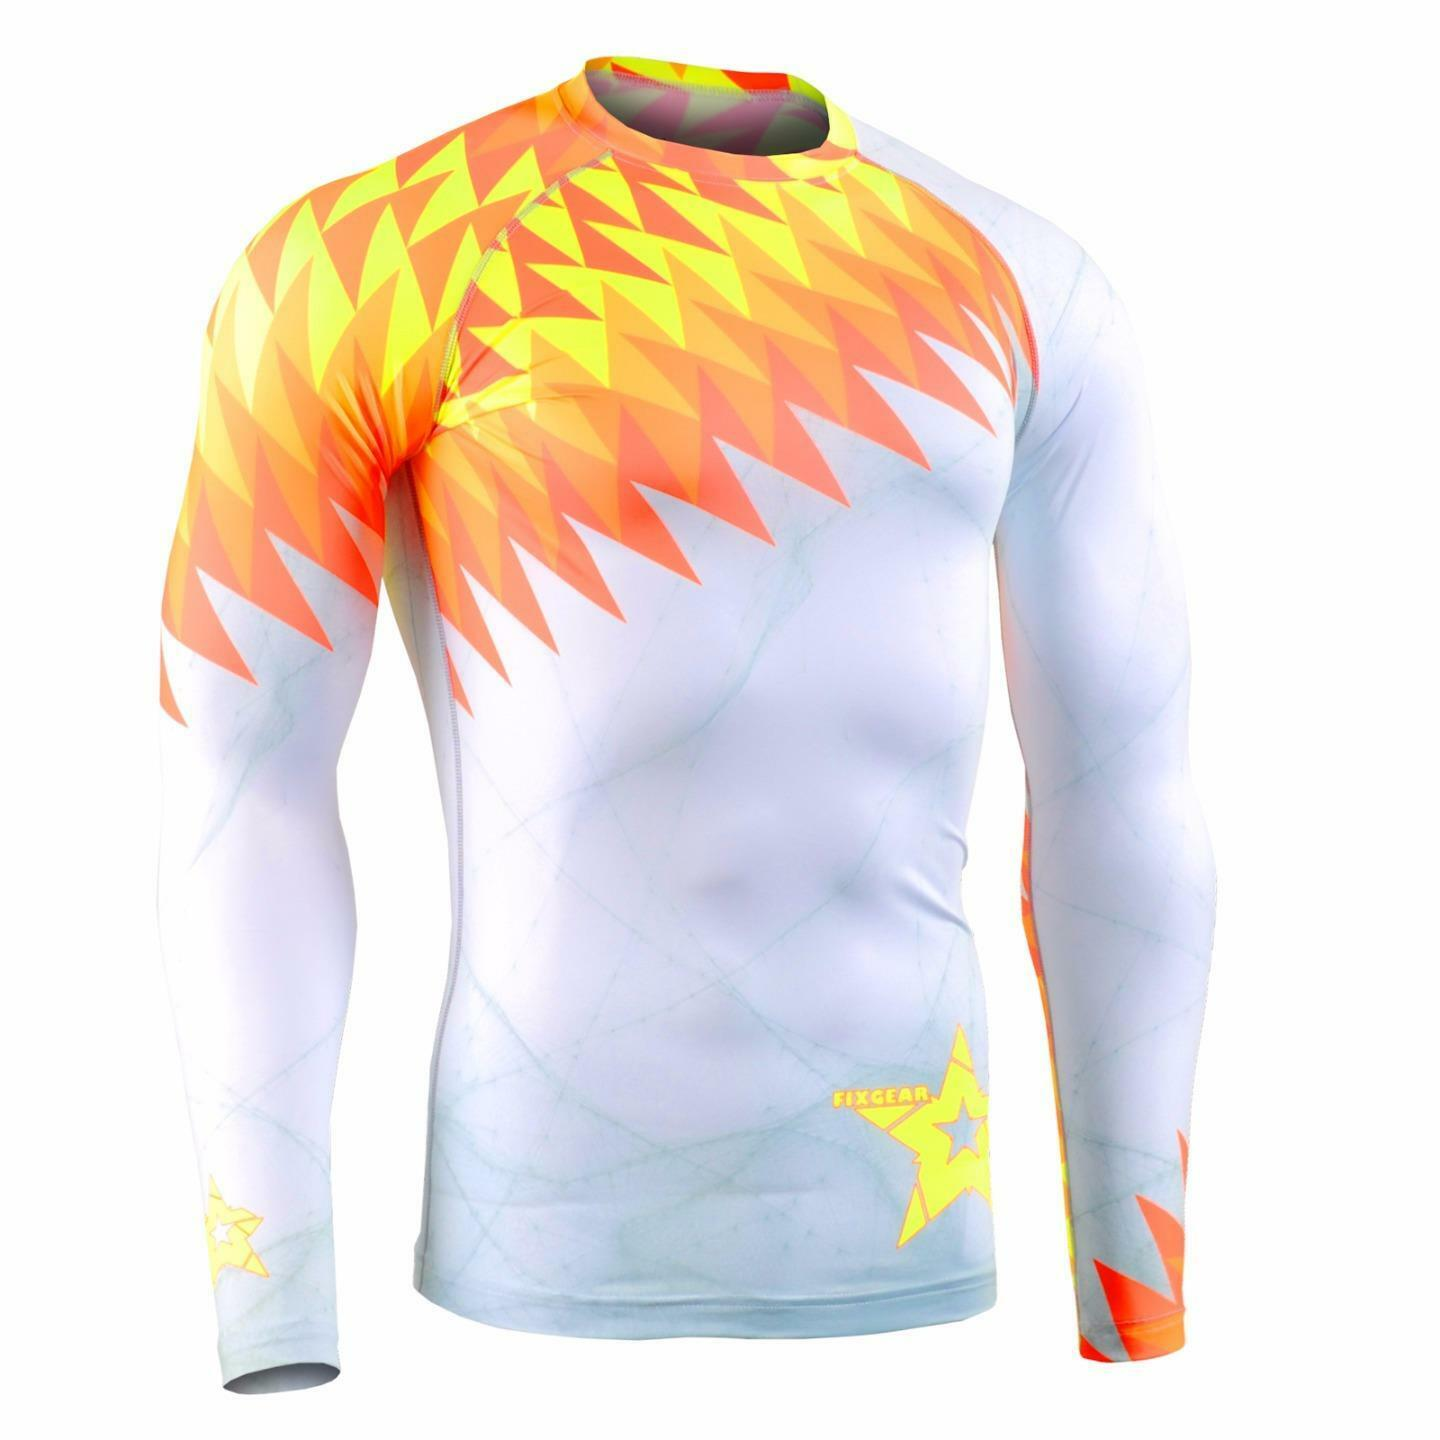 FIXGEAR CFL-F65 Compression Base Layer Shirt Sportswear Bodybuilding Workout GYM